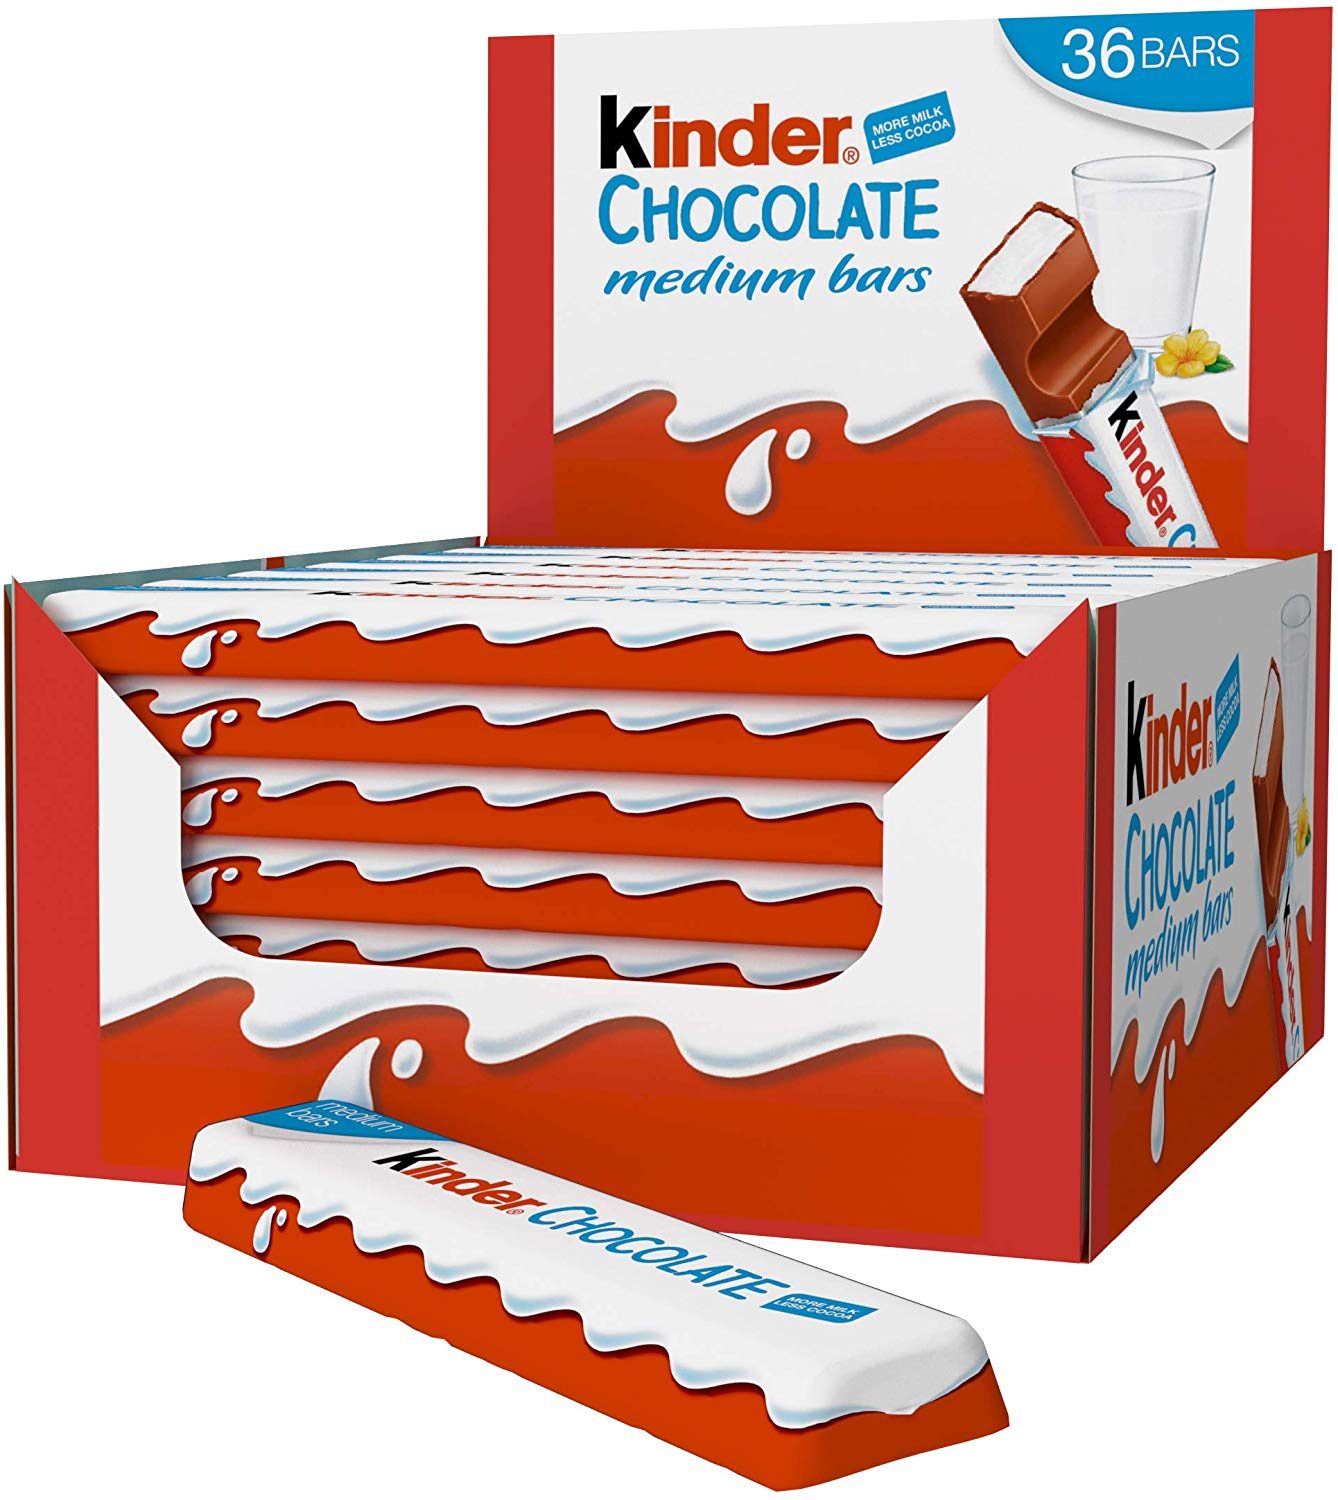 Kinder Chocolate medium bars (box of 36 single bars x 21g)